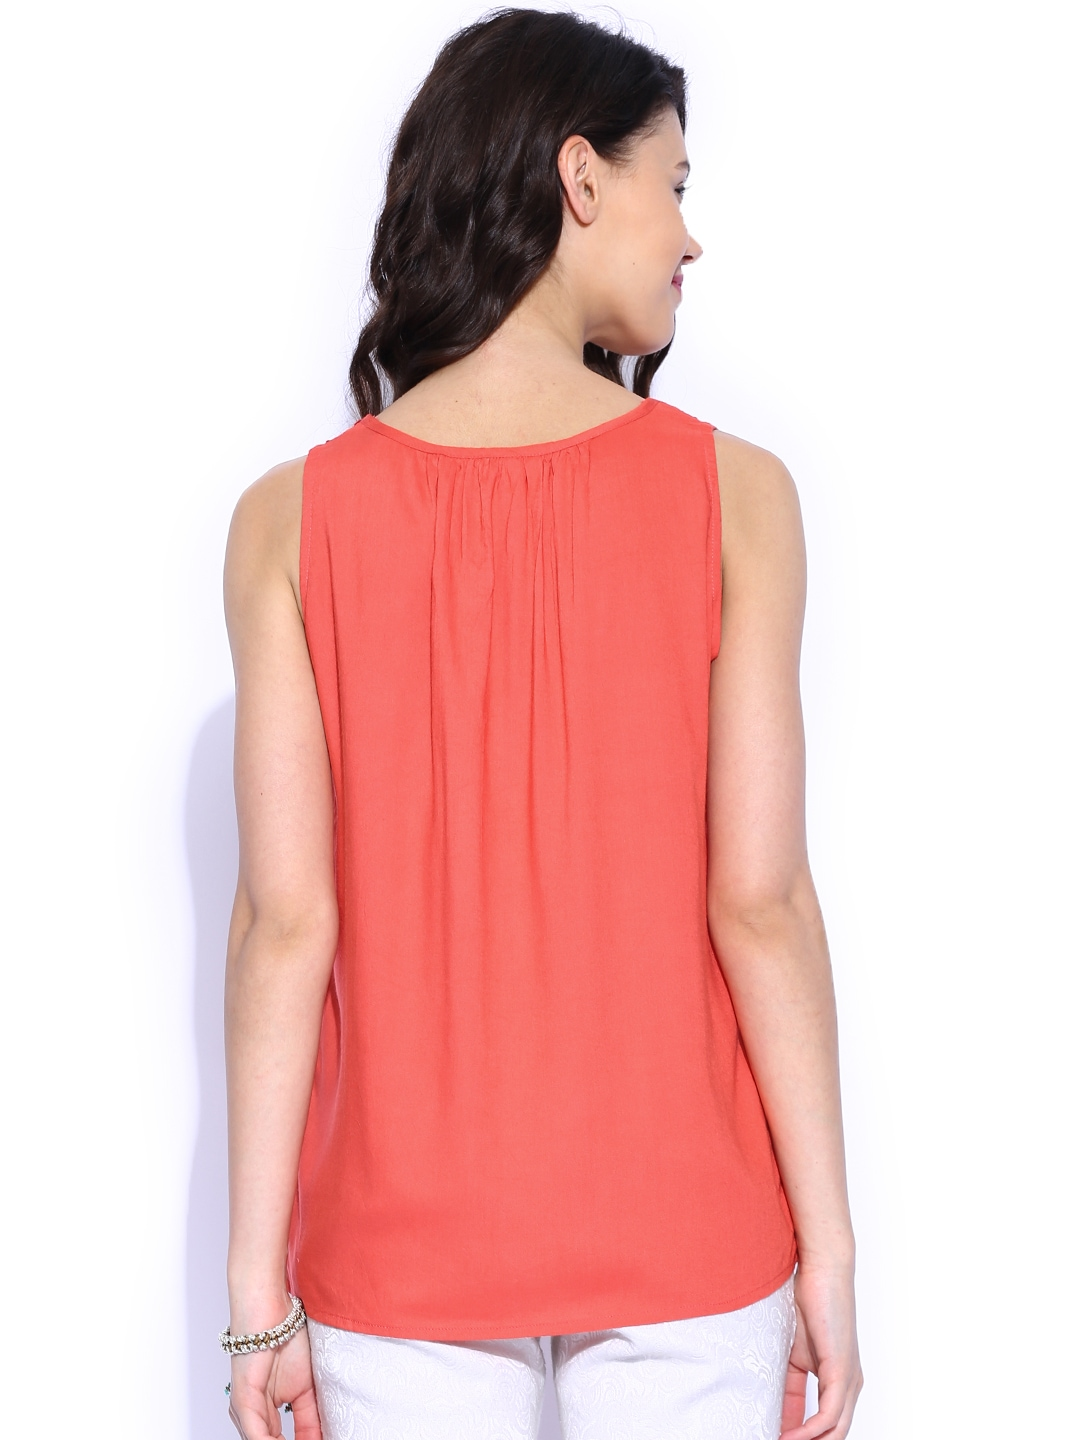 Compare coral ladies tops products in Clothes at qrqceh.tk, including Nike Womens Burnout Fly Tank Top Light Coral, Nike Womens Miler Printed Sleeveless Top Bright Coral, Bob Timberlake Embroidered Lace-Up Knit Top for Ladies - Blue Coral - XS.